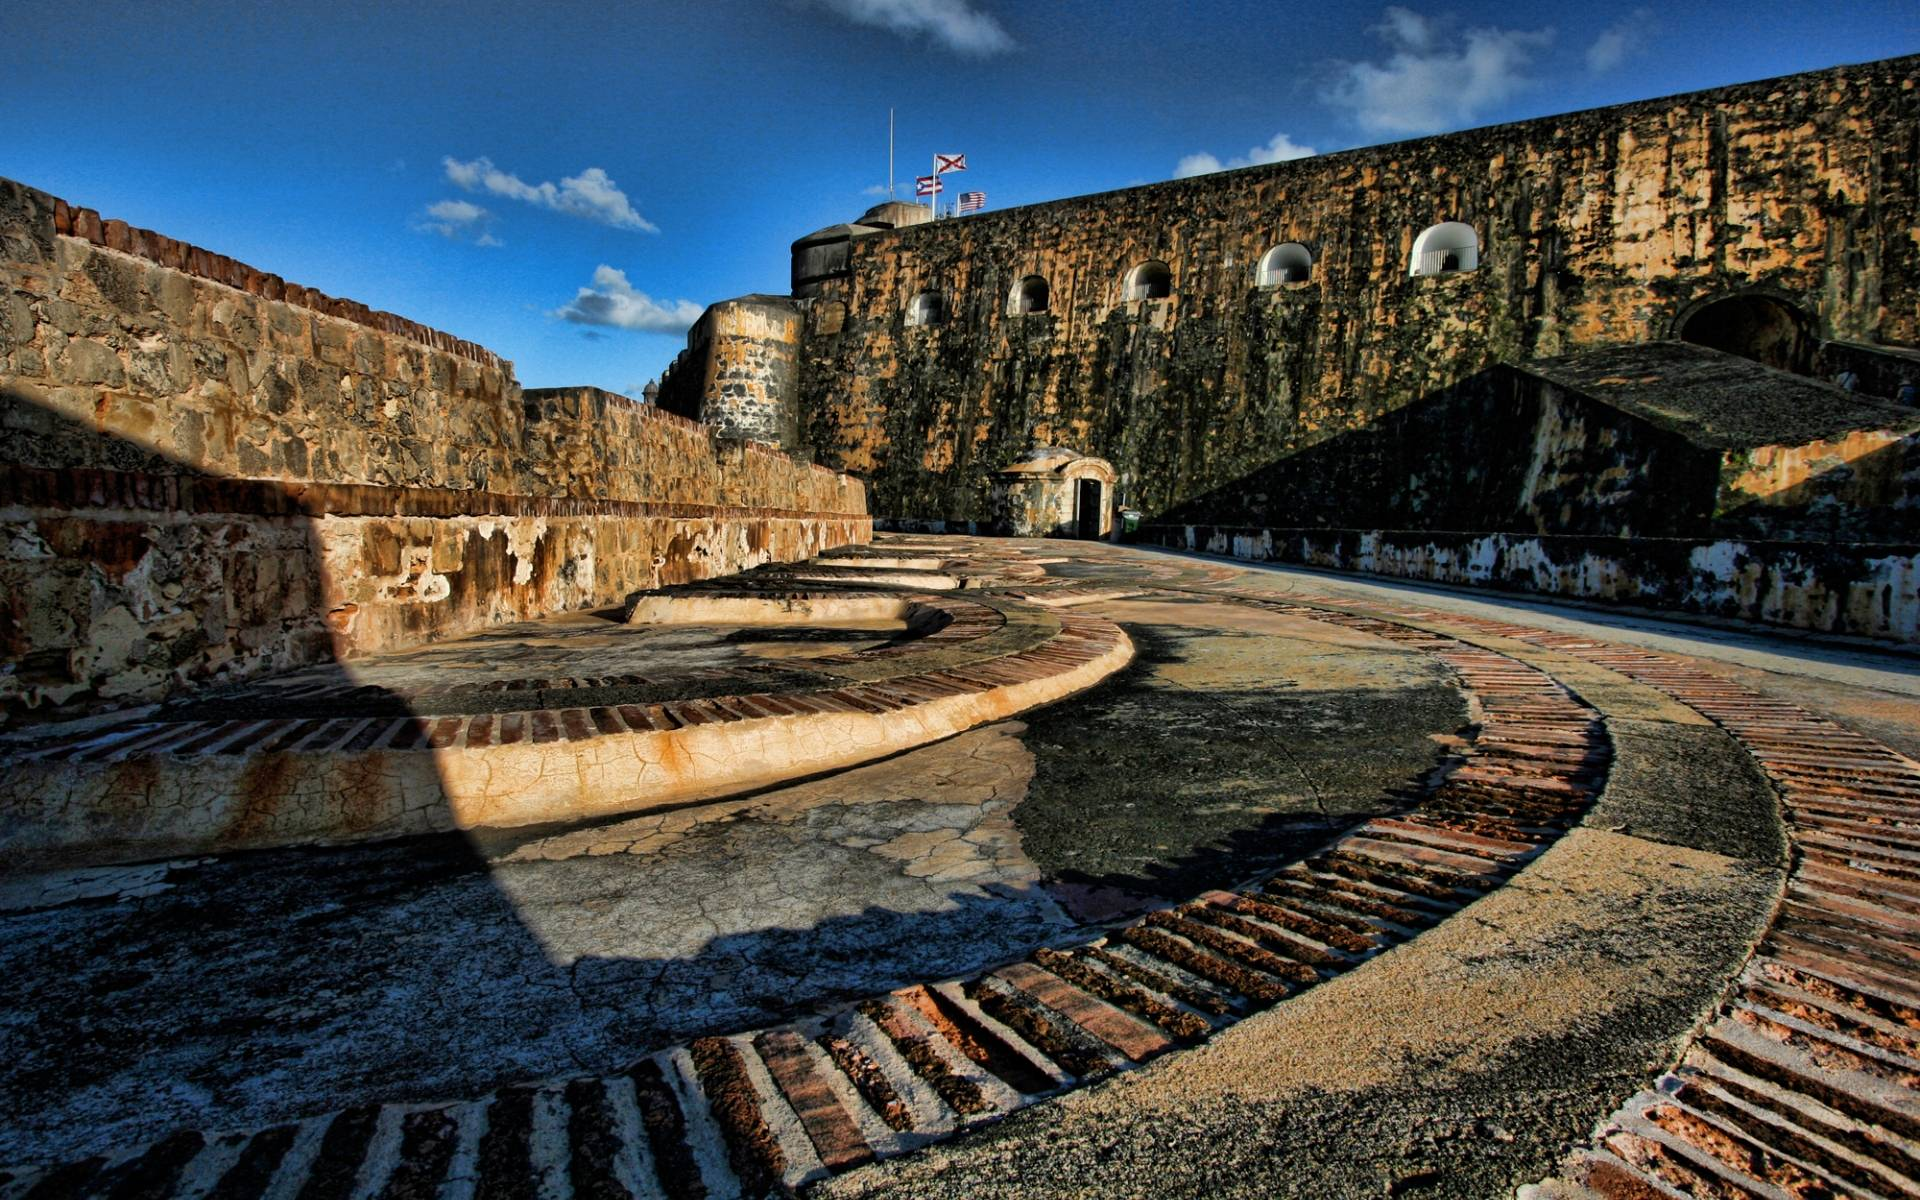 173 Free images of Puerto Rico